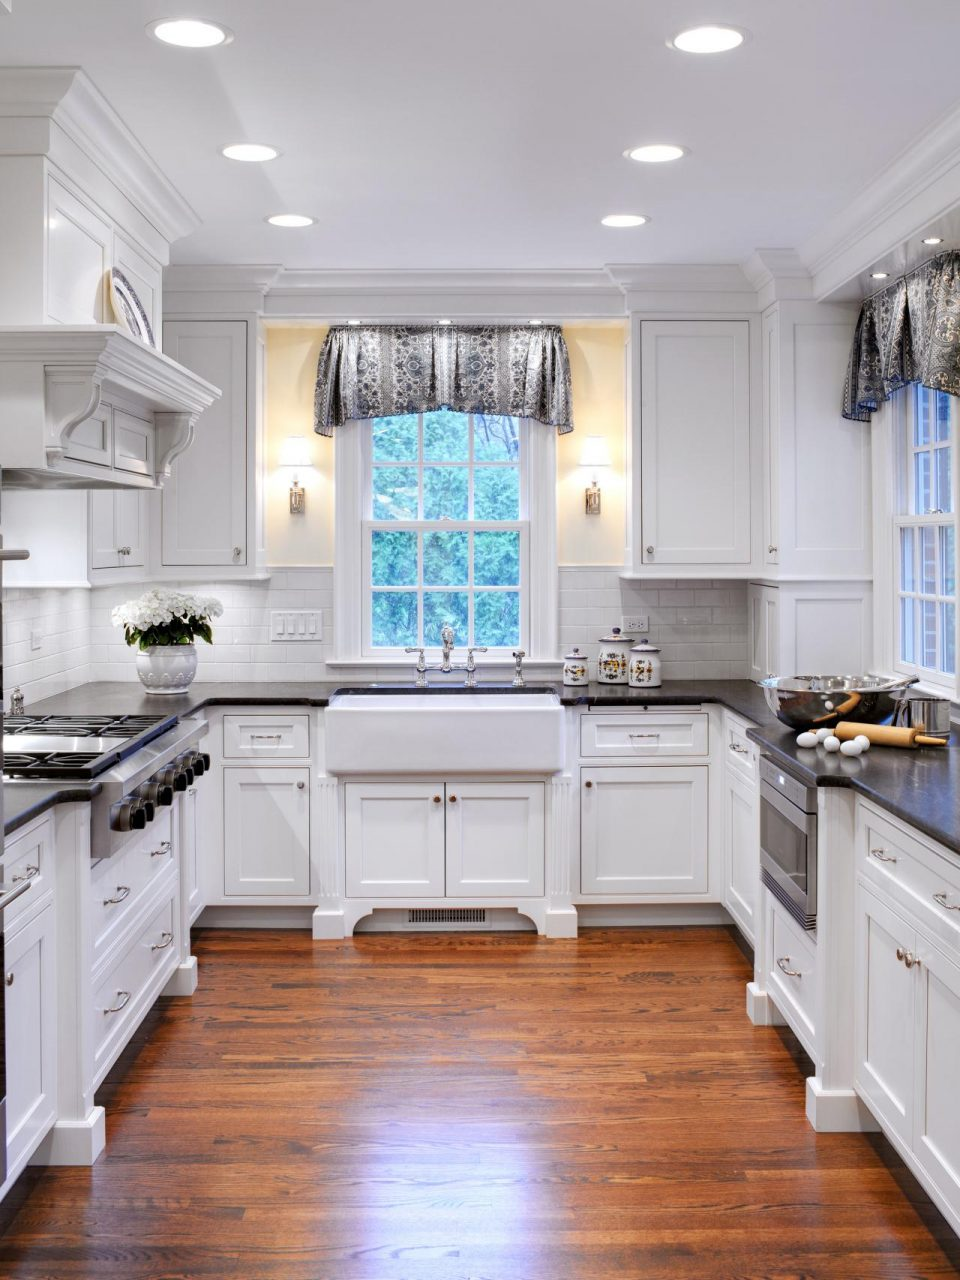 Awesome Small Cottage Kitchen Designs Presenting Beautiful Recessed